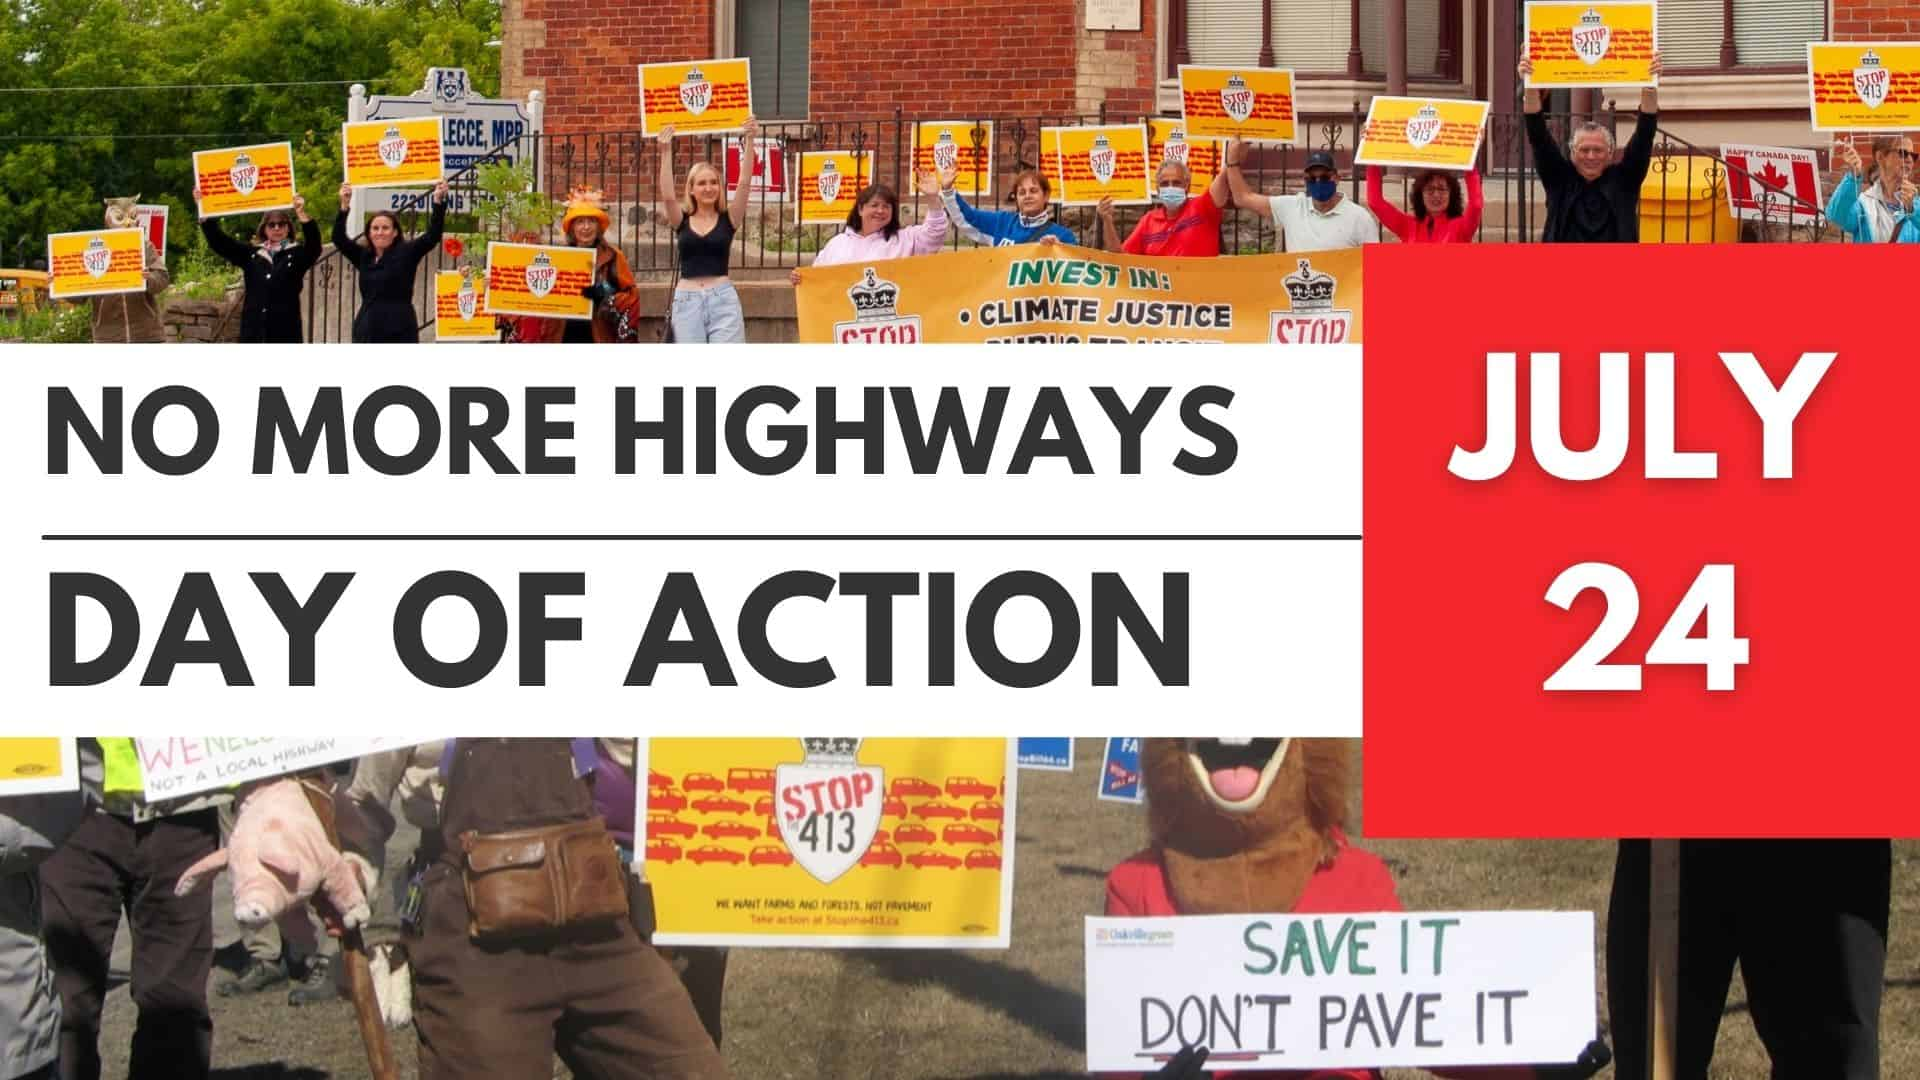 No More Highways Day of Action - July 24, 2021